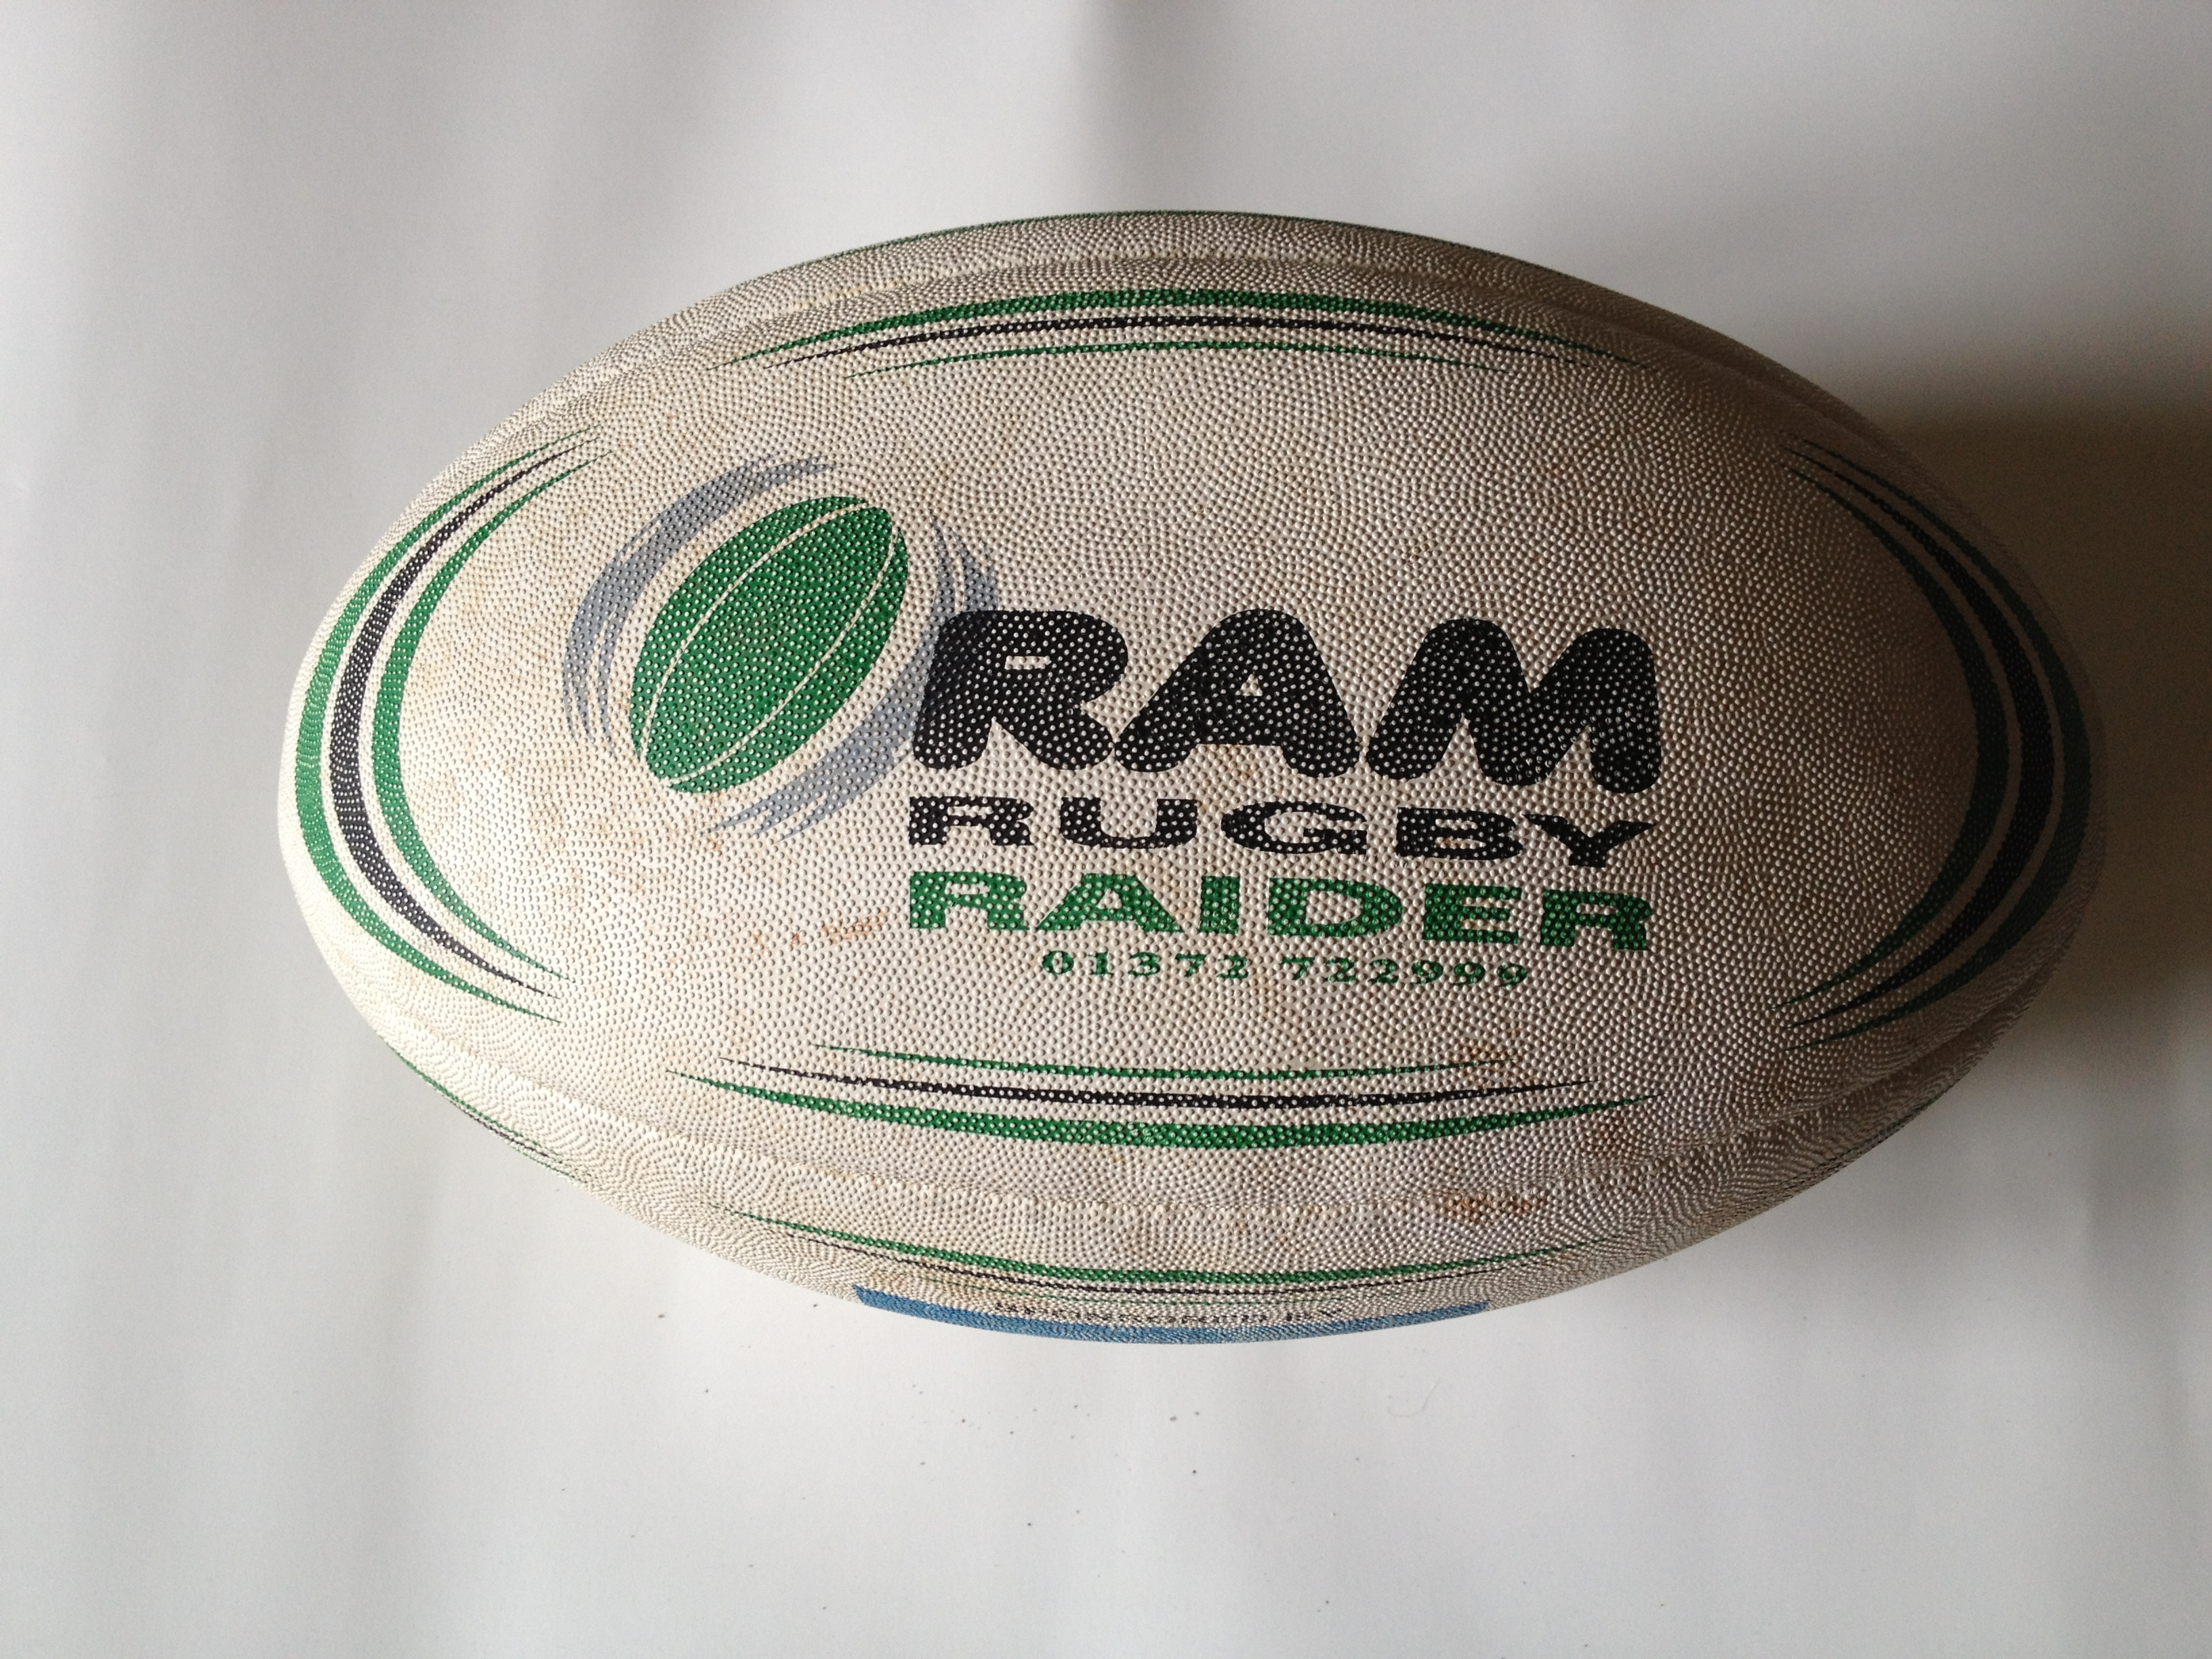 Rugby ball1